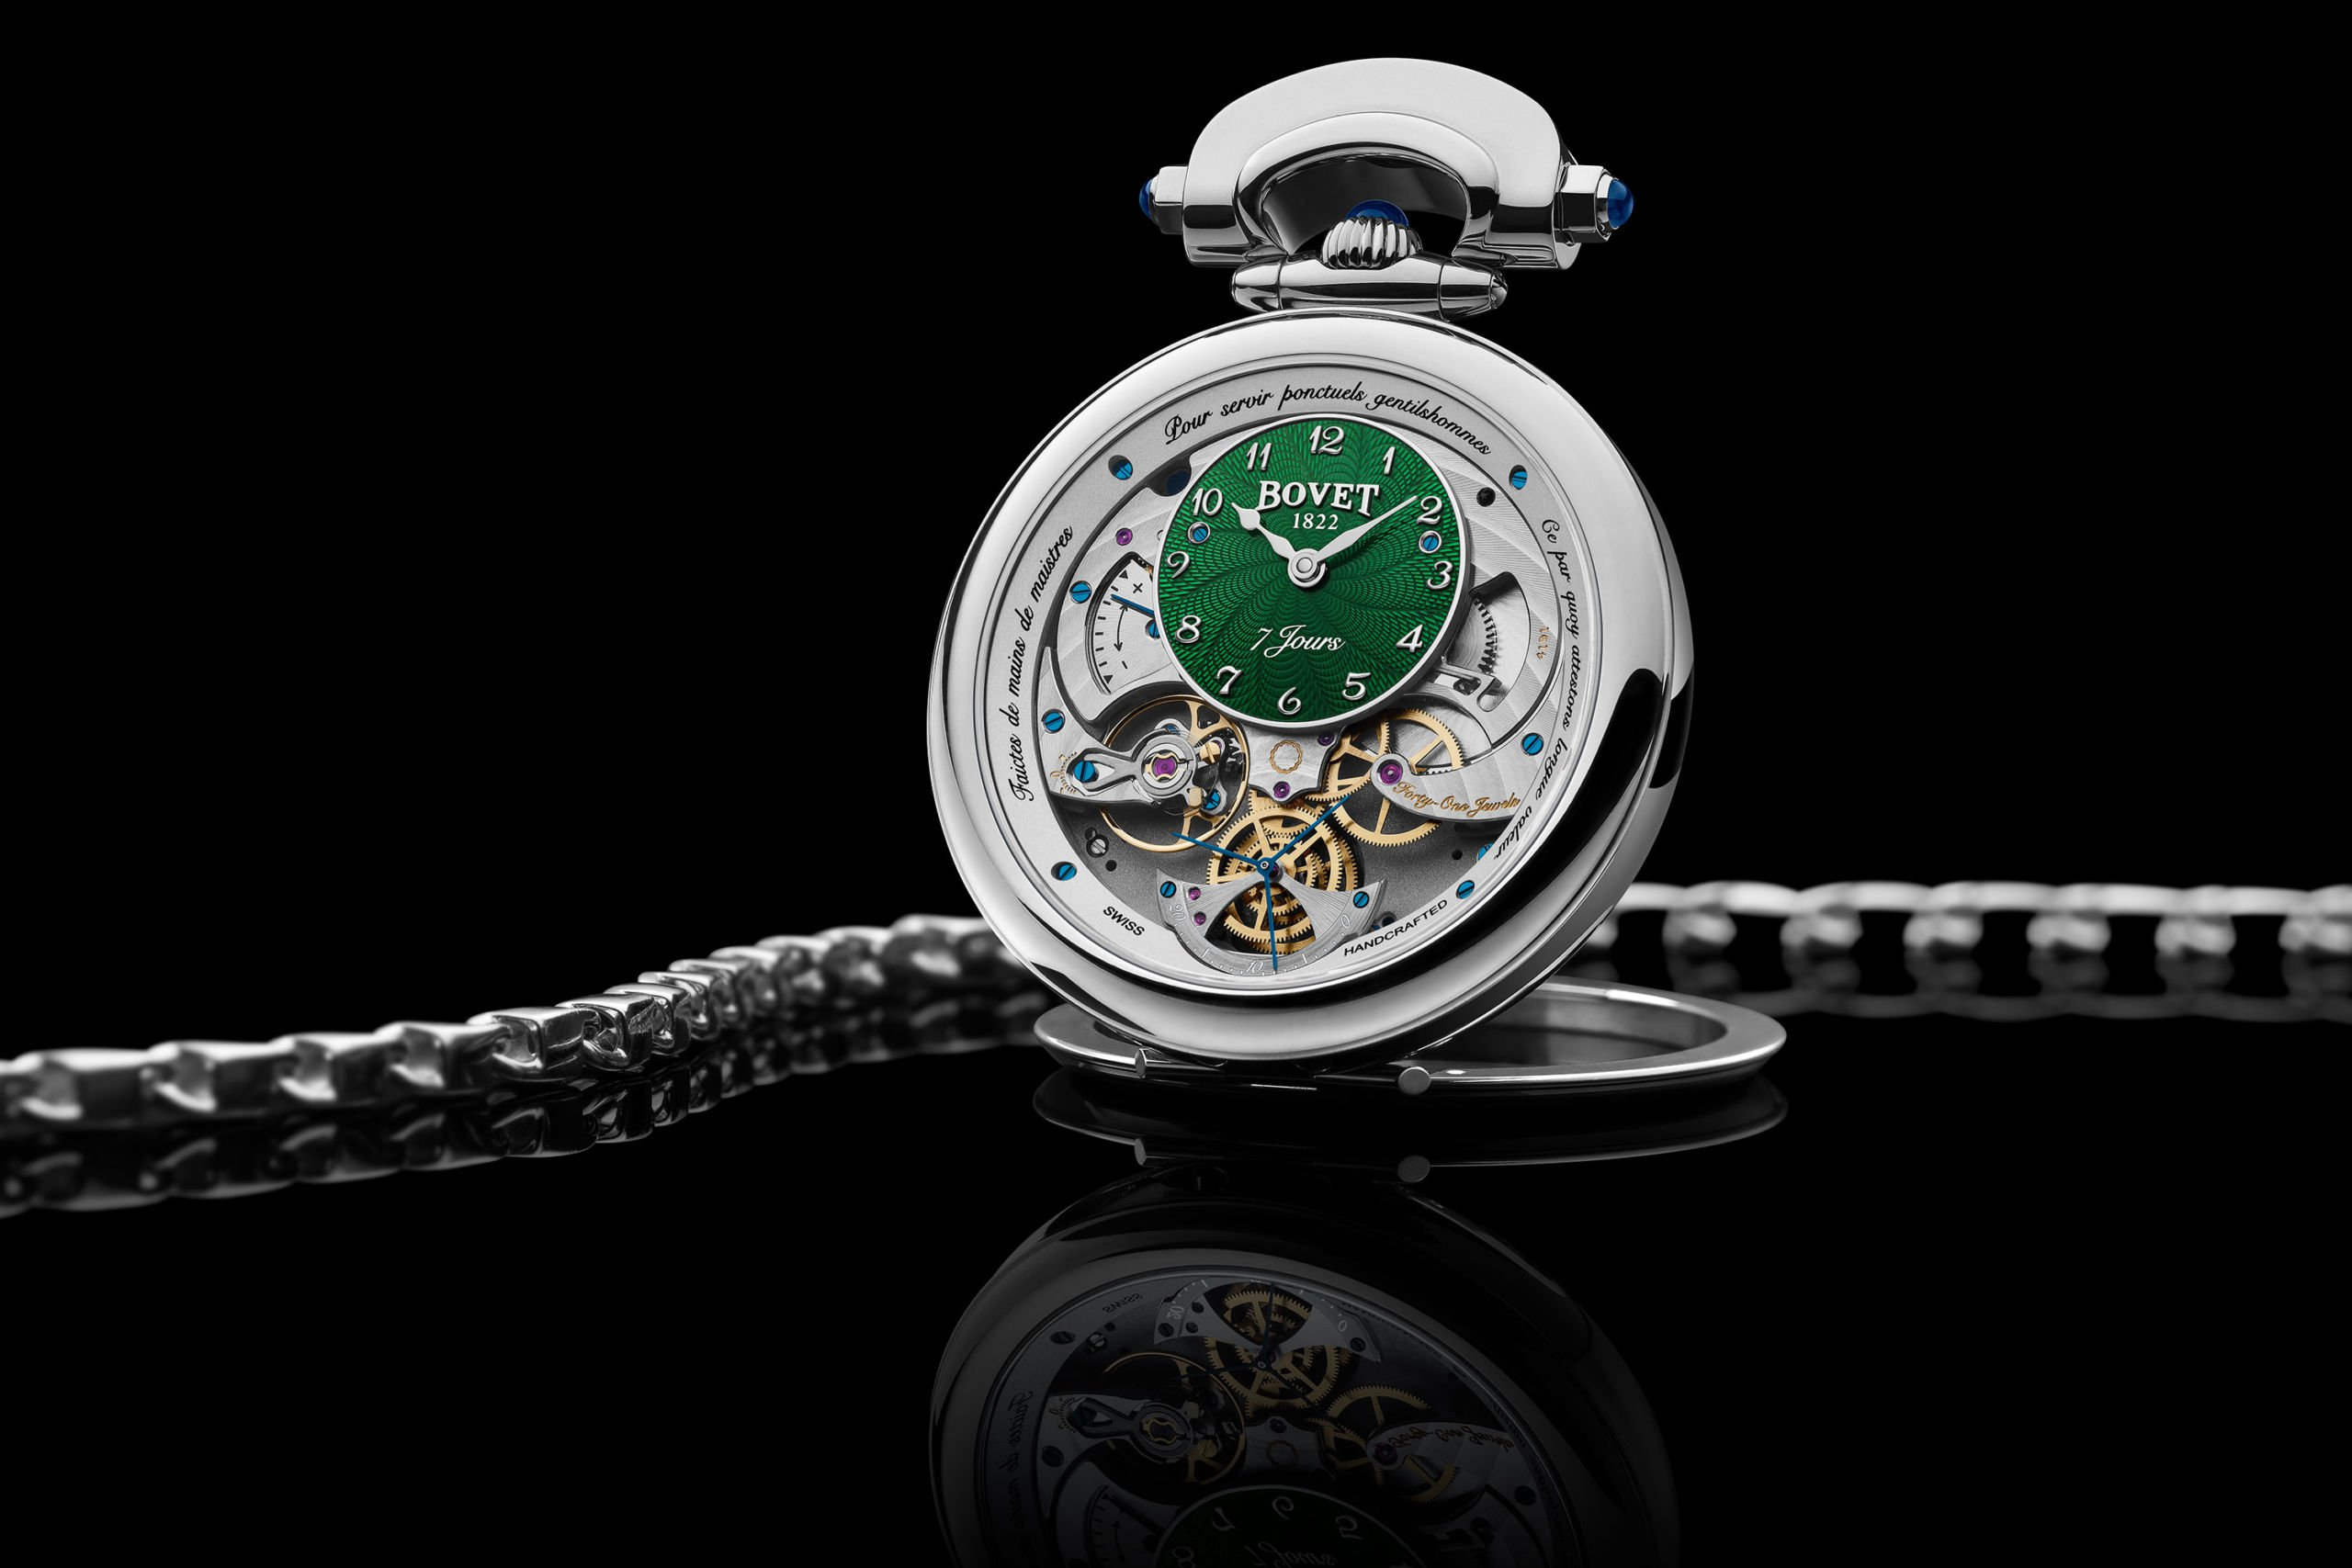 Bovet-1-twu8c6-scaled